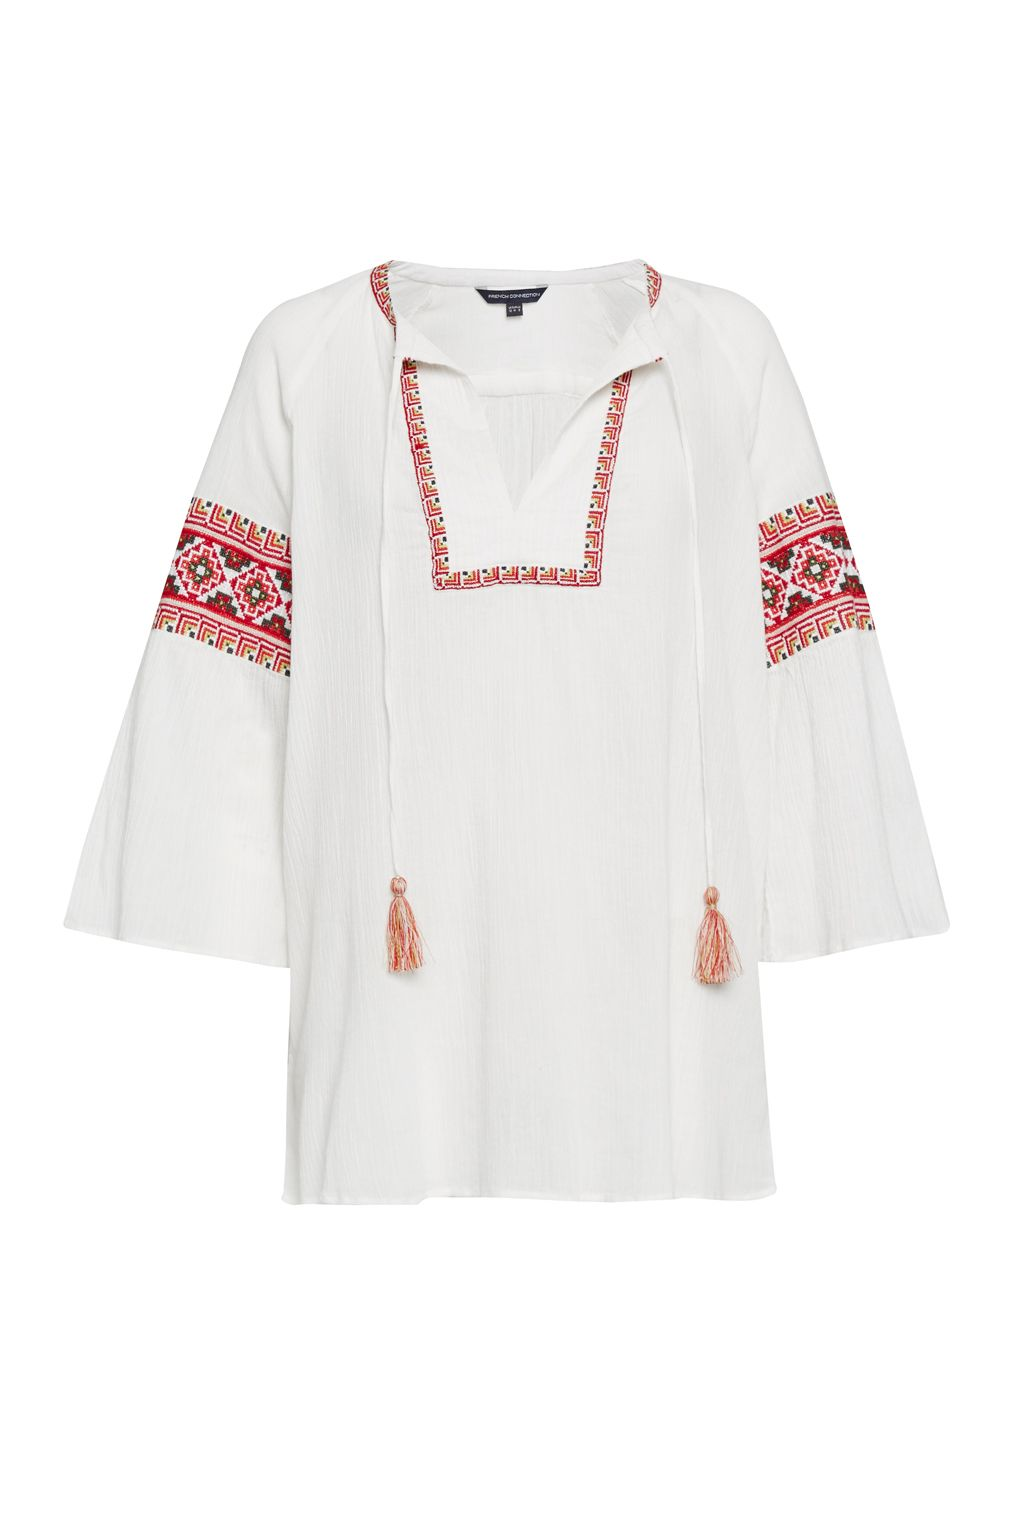 French Connection Adanna Crinkle Embroidered Smock Top, White